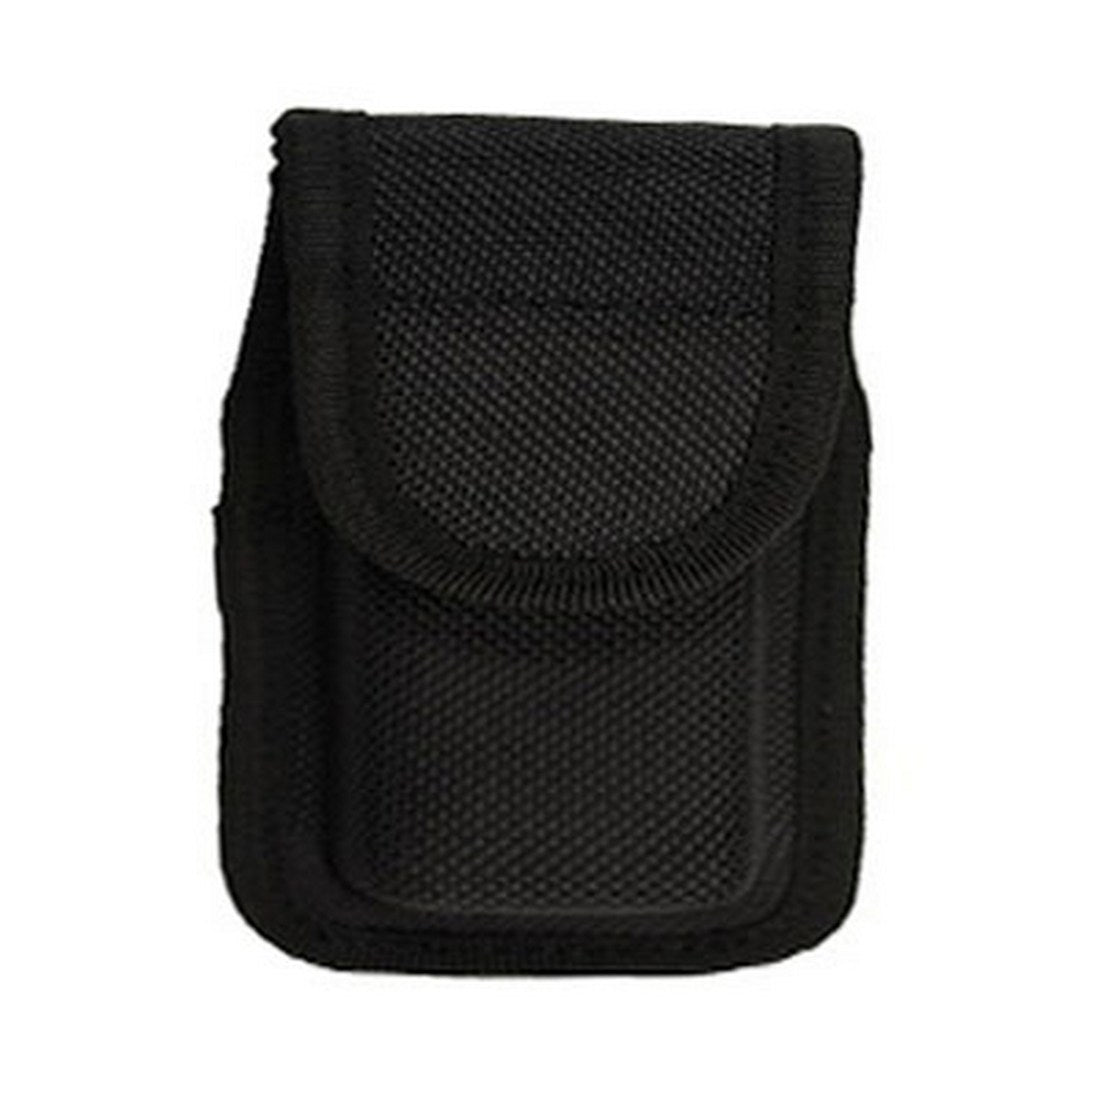 Tact Squad TG013 Pager/Glove Pouch